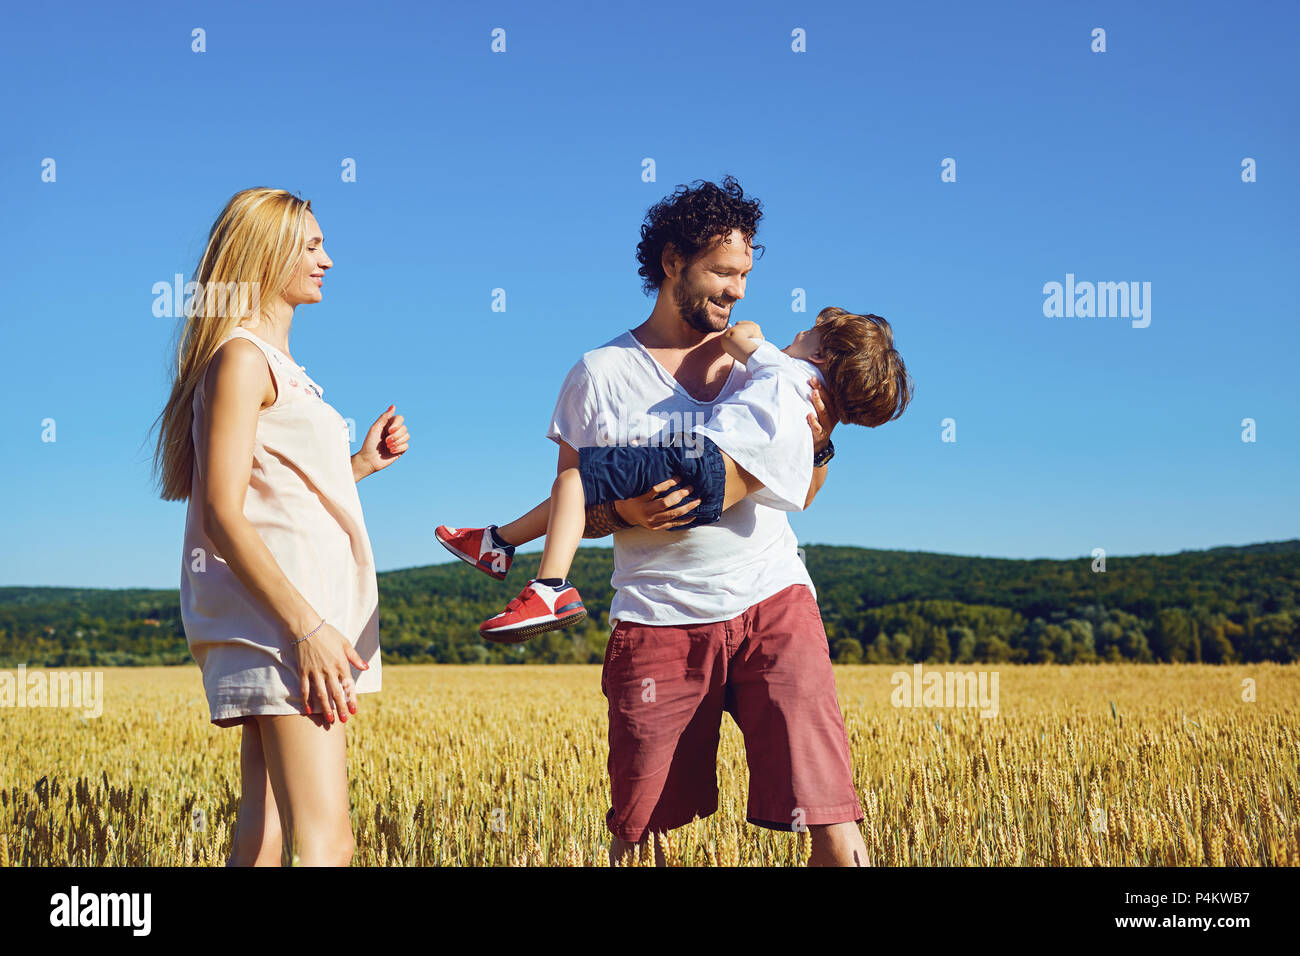 A happy family is enjoying fun with a child outdoors. - Stock Image